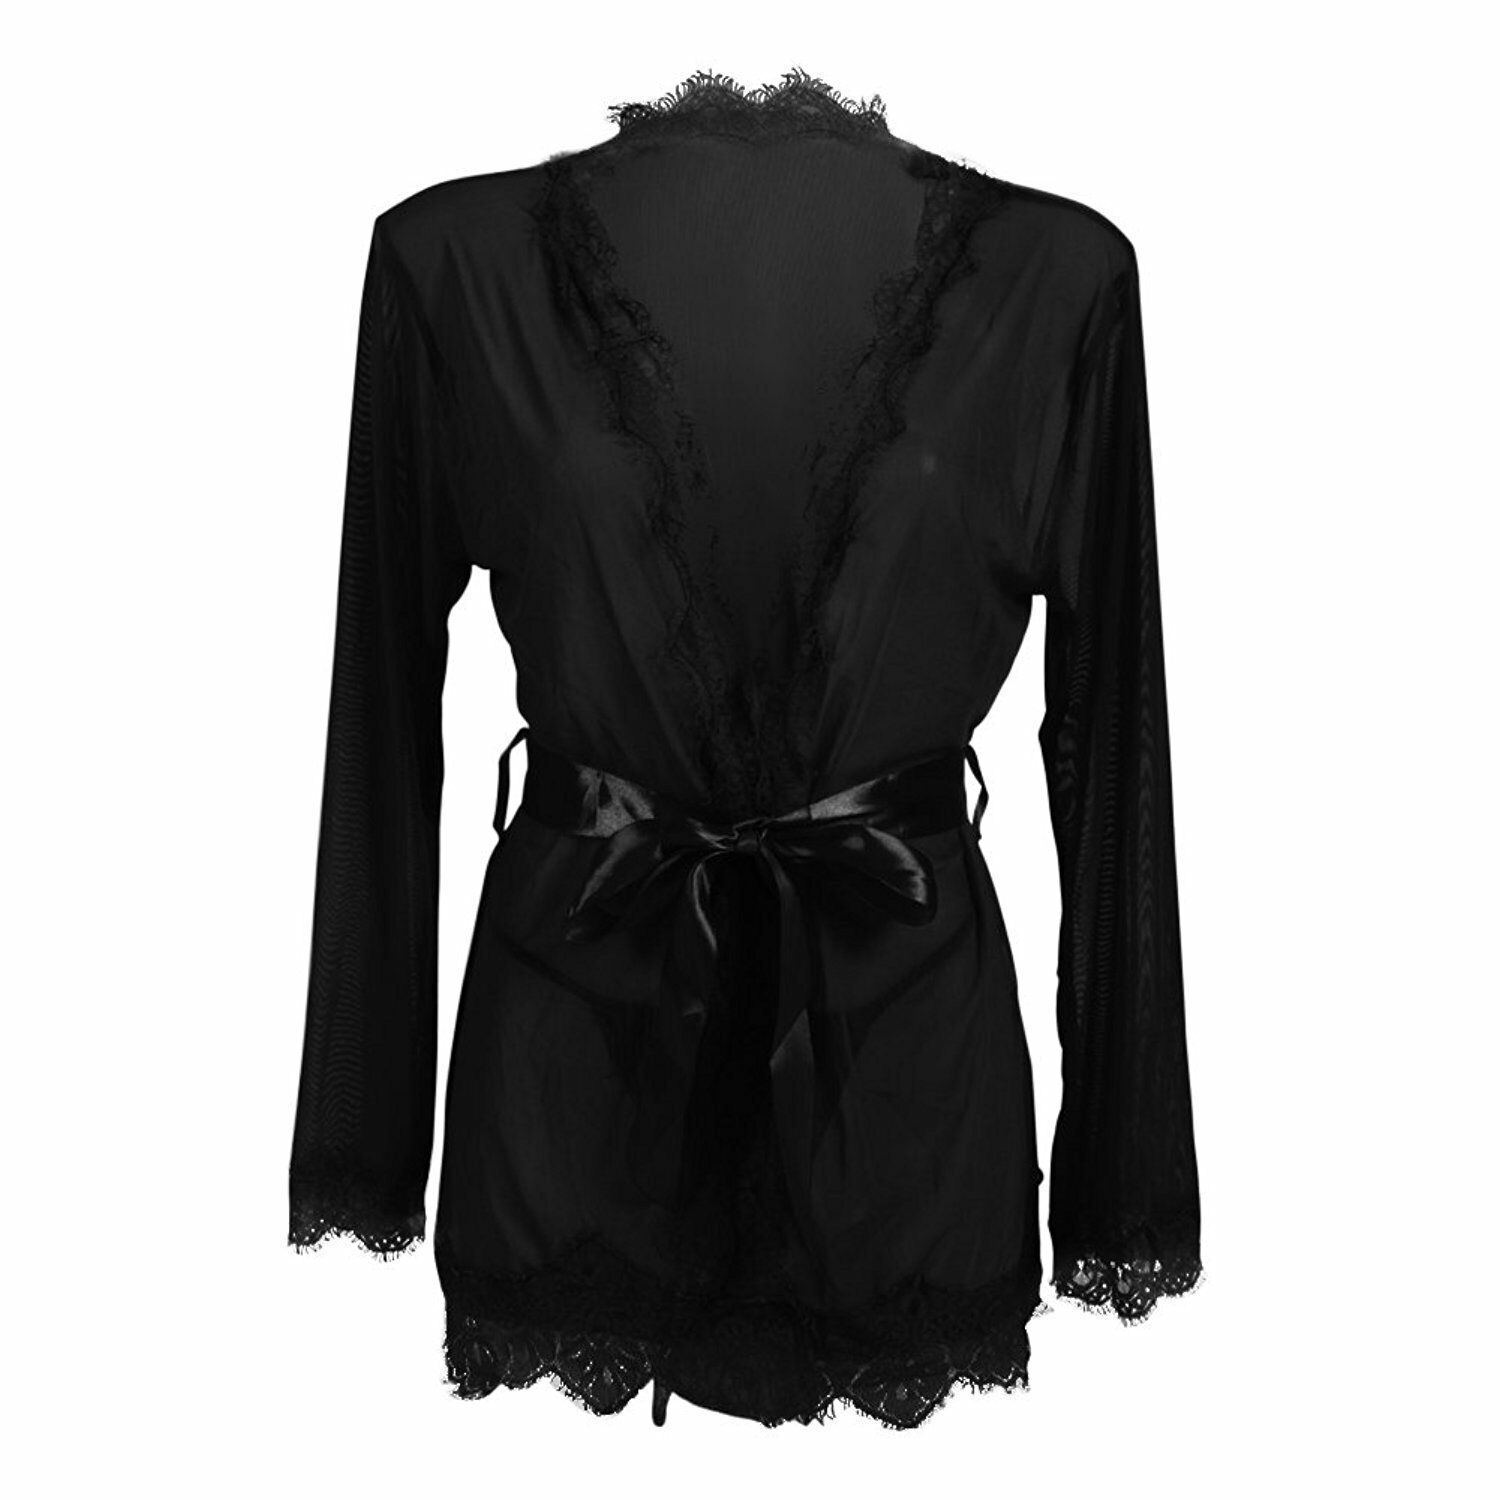 Printed Cherry Stretch SILK Satin and Black Lace Lace Robe Elbow Lace Sleeve Women/'s Dressing Gown Kimono Robe Female Hand Robot